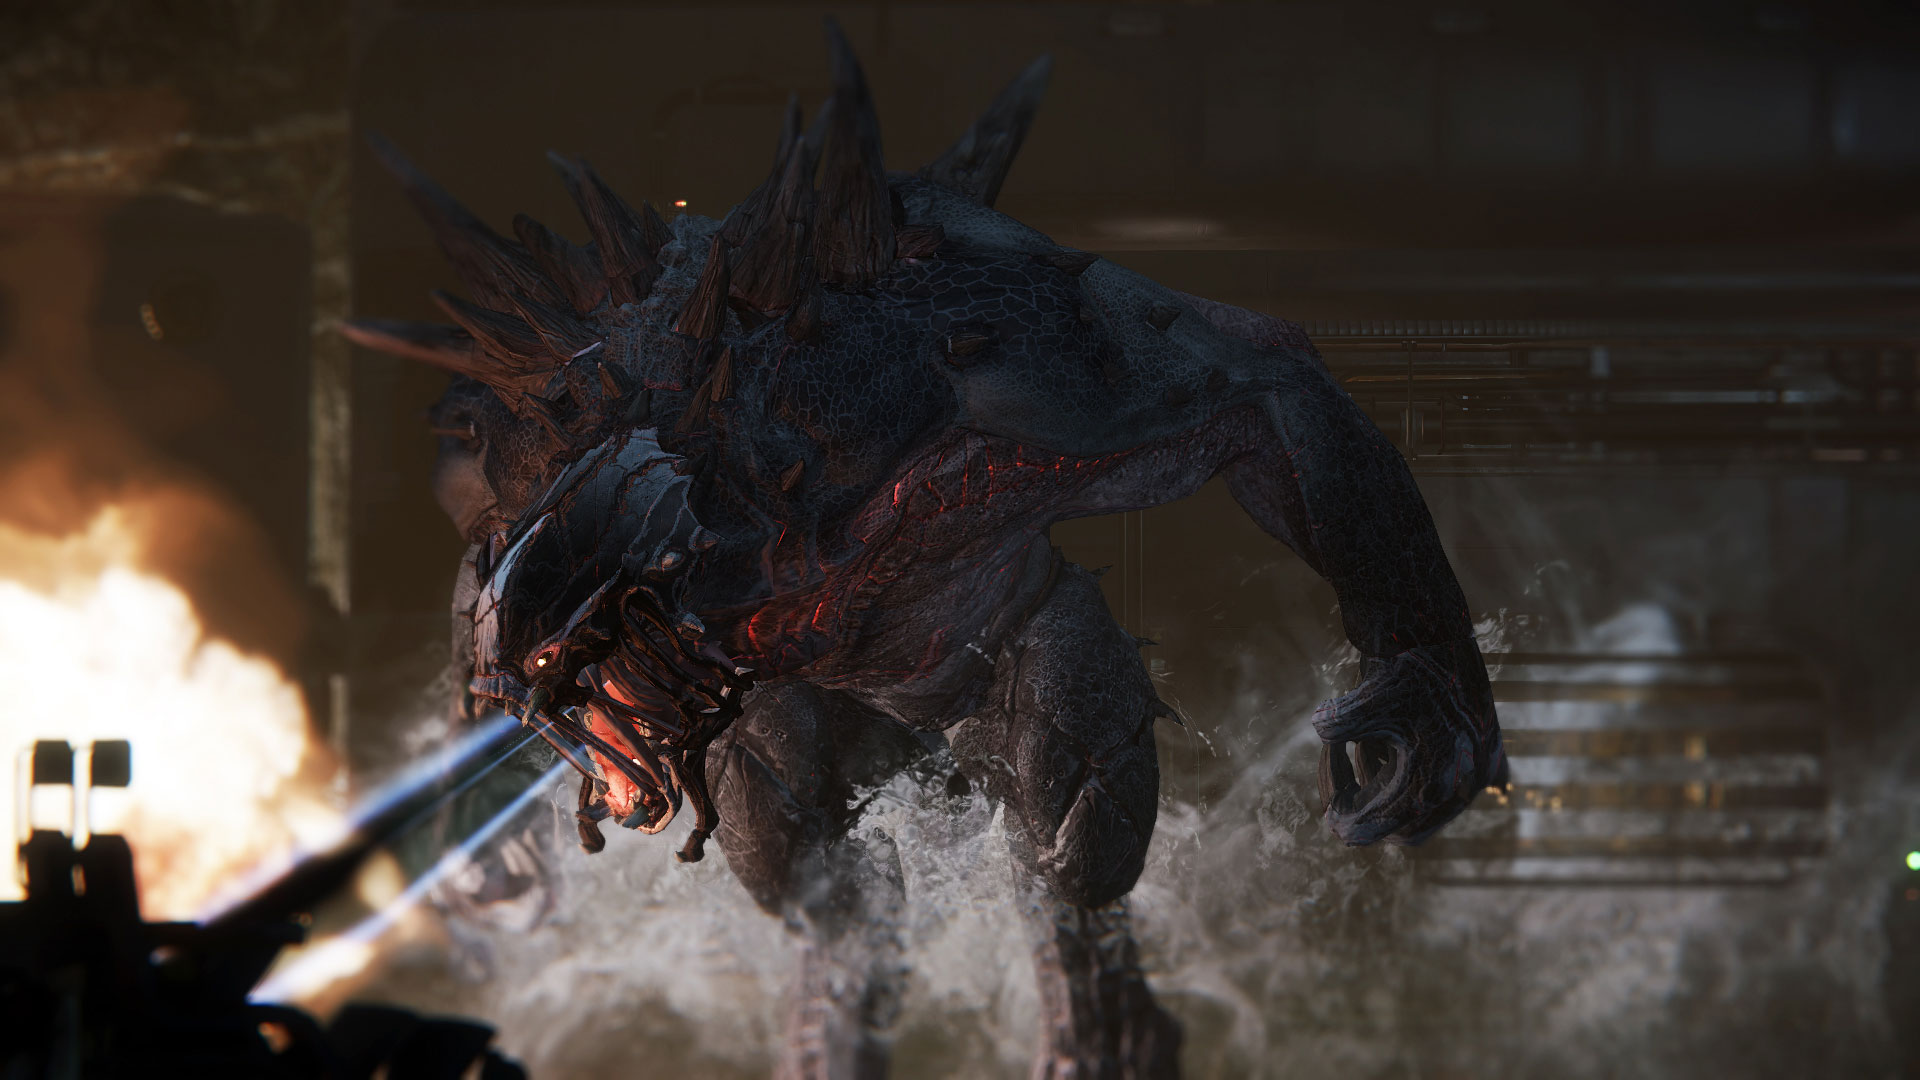 The Monster in the upcoming game Evolve demonstrating its fire-breathing capability.